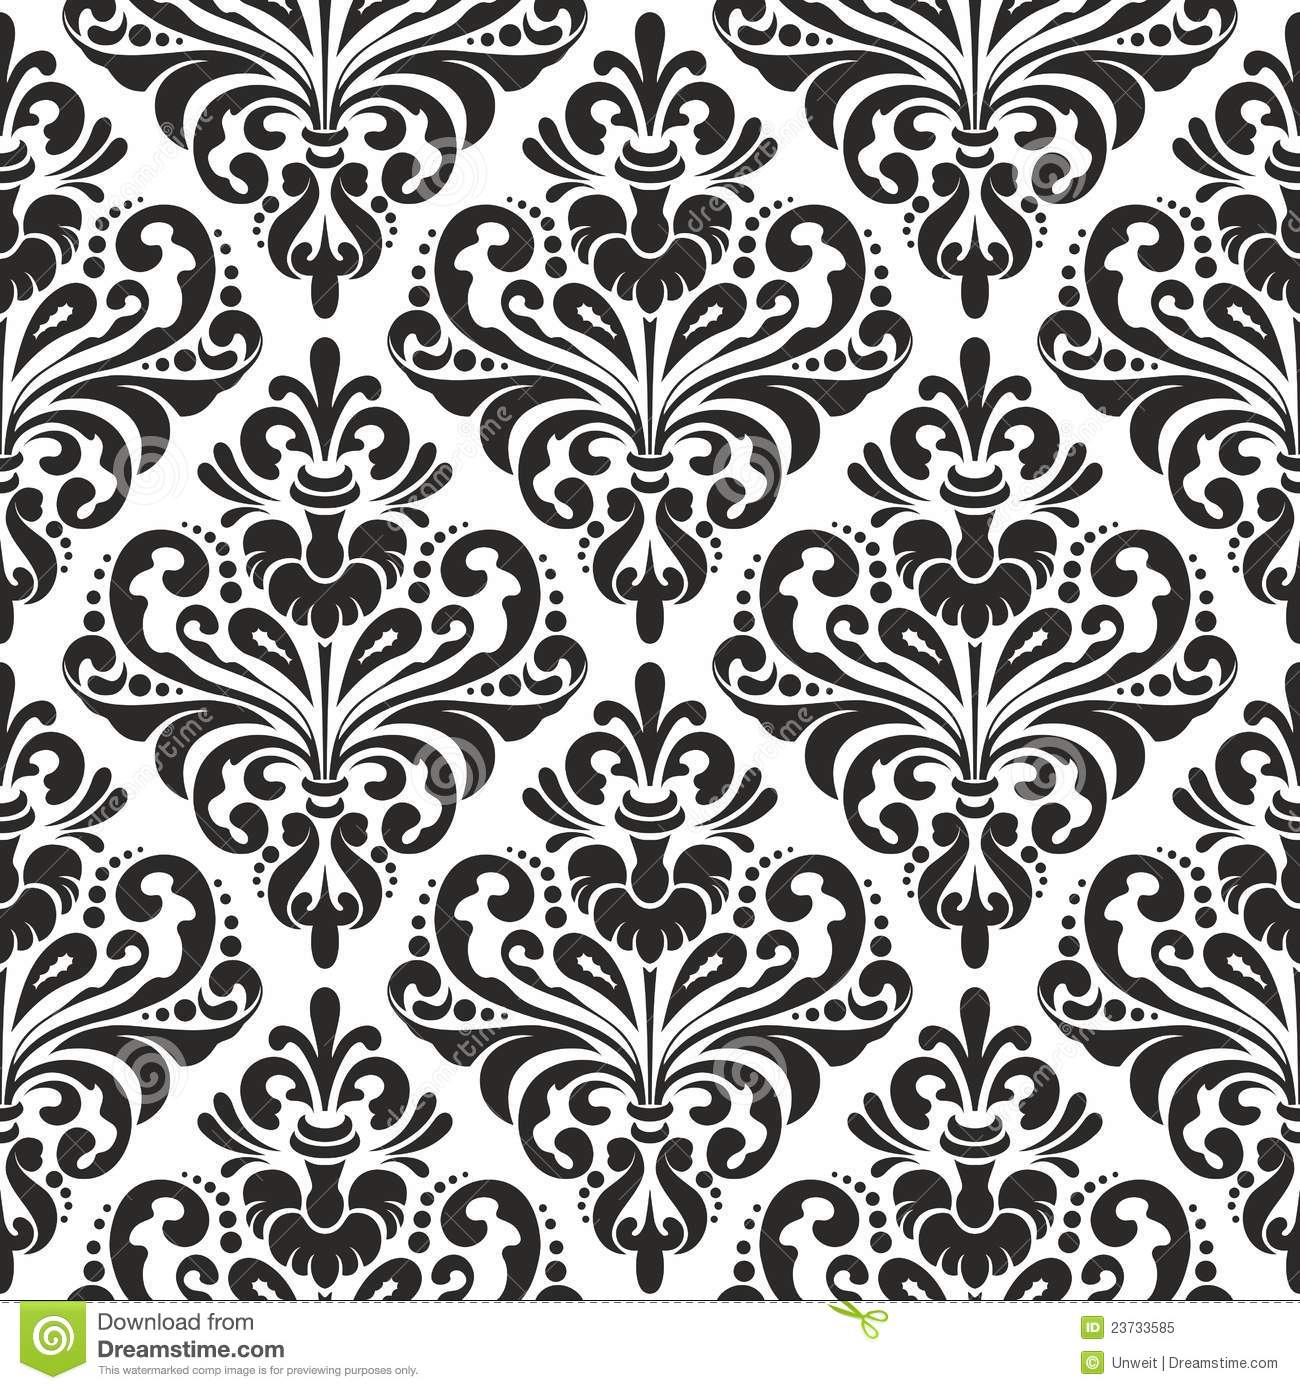 Black White Damask Wallpaper Release date Specs Review Redesign 1300x1390